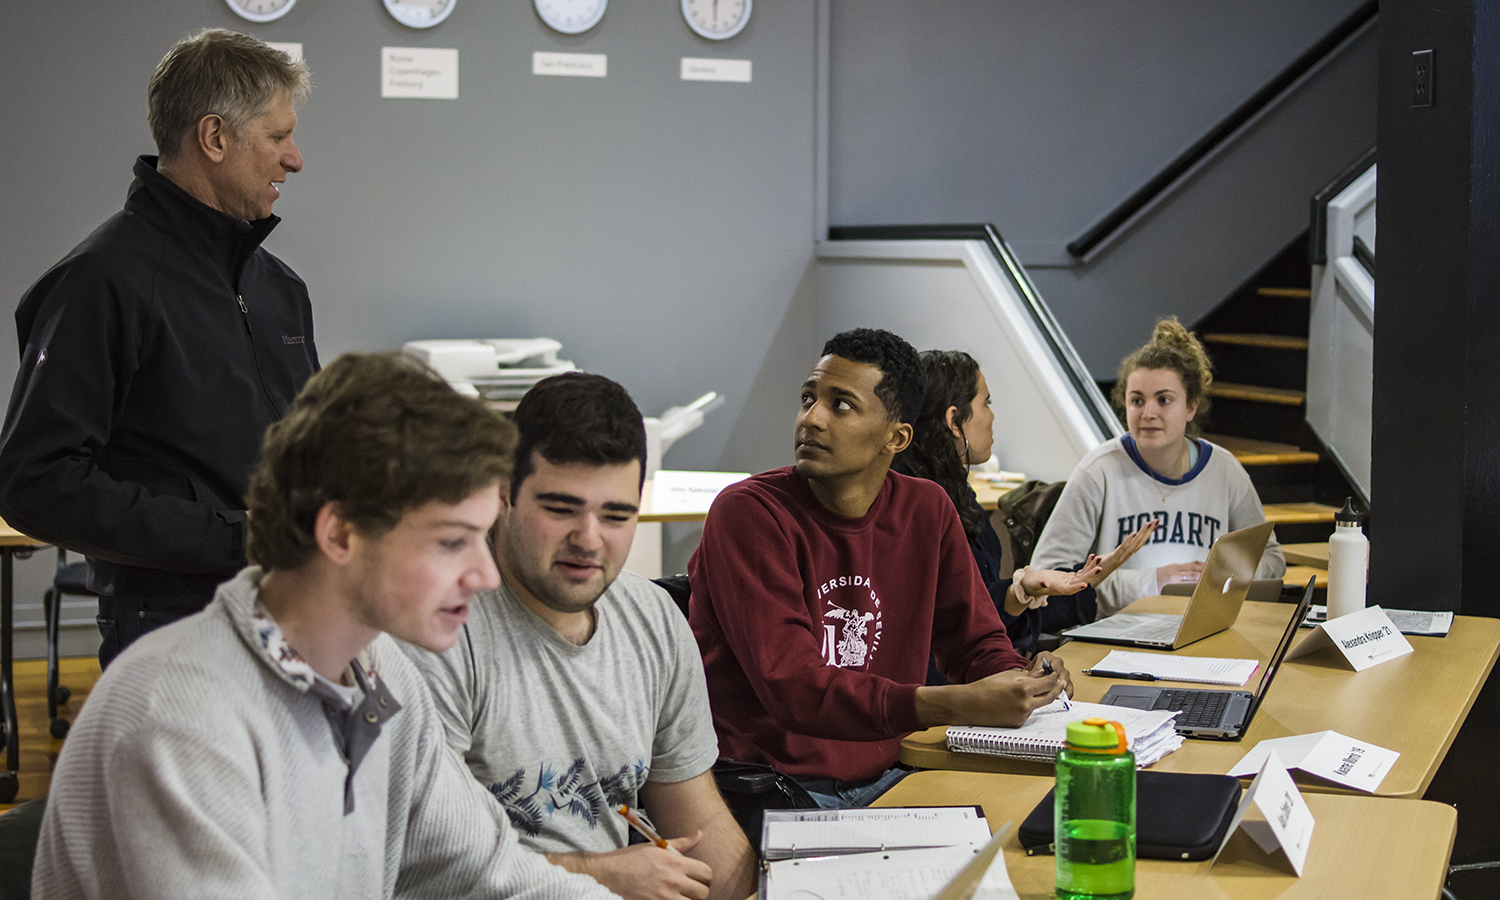 """Margiloff Family Entrepreneurial Fellow Ed Bizari discusses helps Kwame Morris 'X workshop his idea for a medical transportation service as part of the """"Discovery Lab"""" in the Bozzuto Center for Entrepreneurship."""